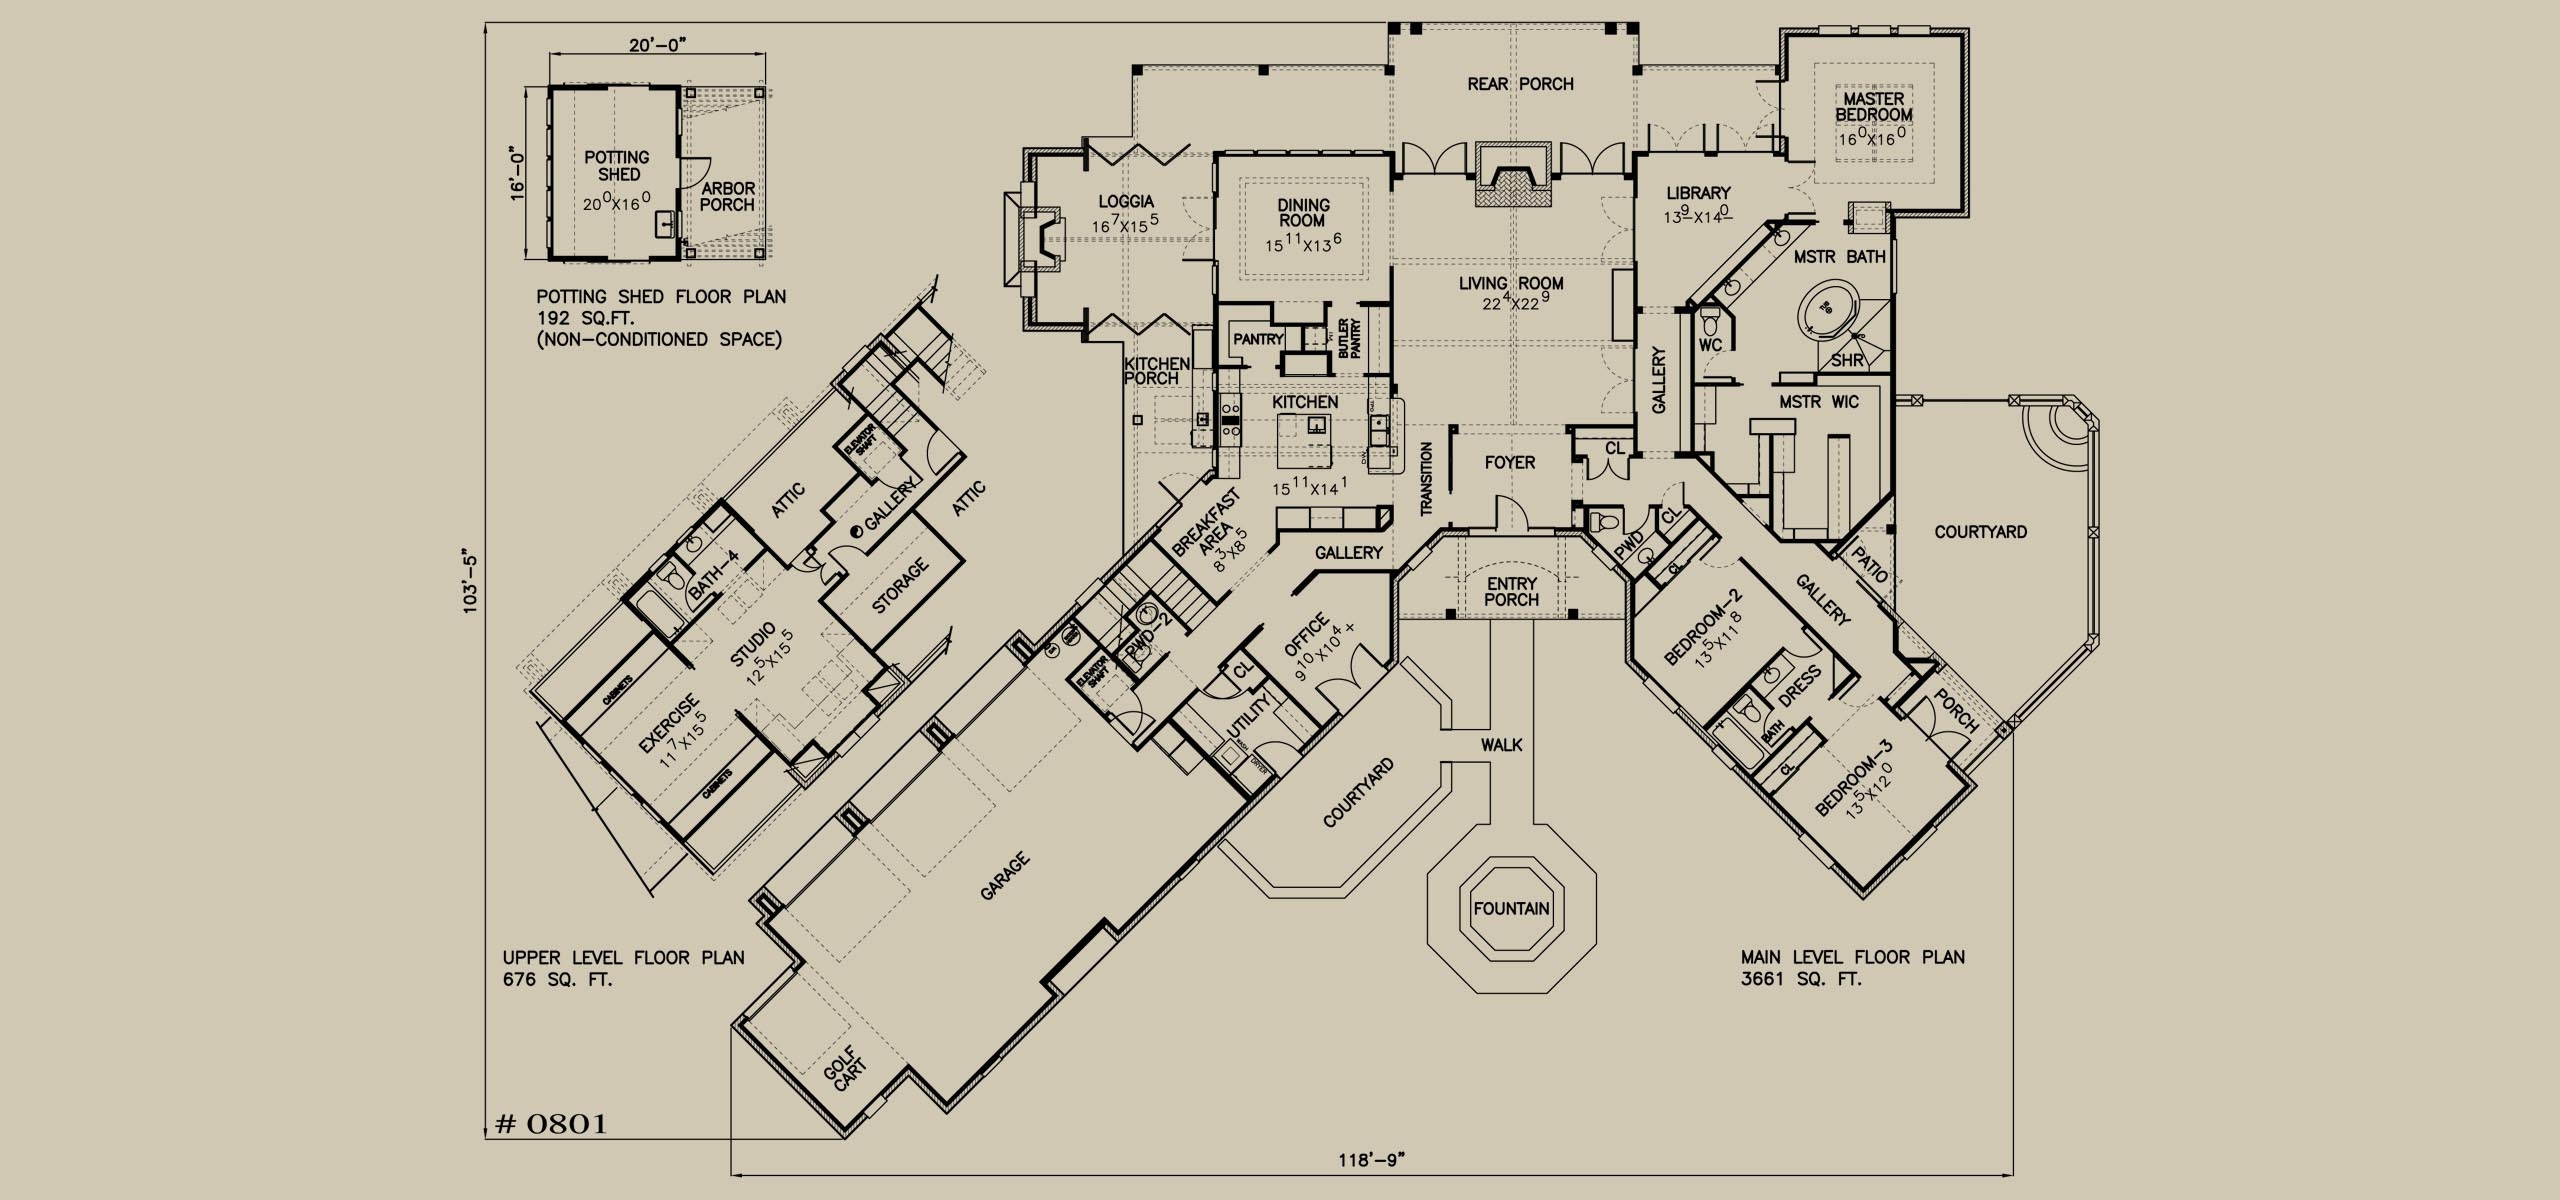 Click to download the floor plan.